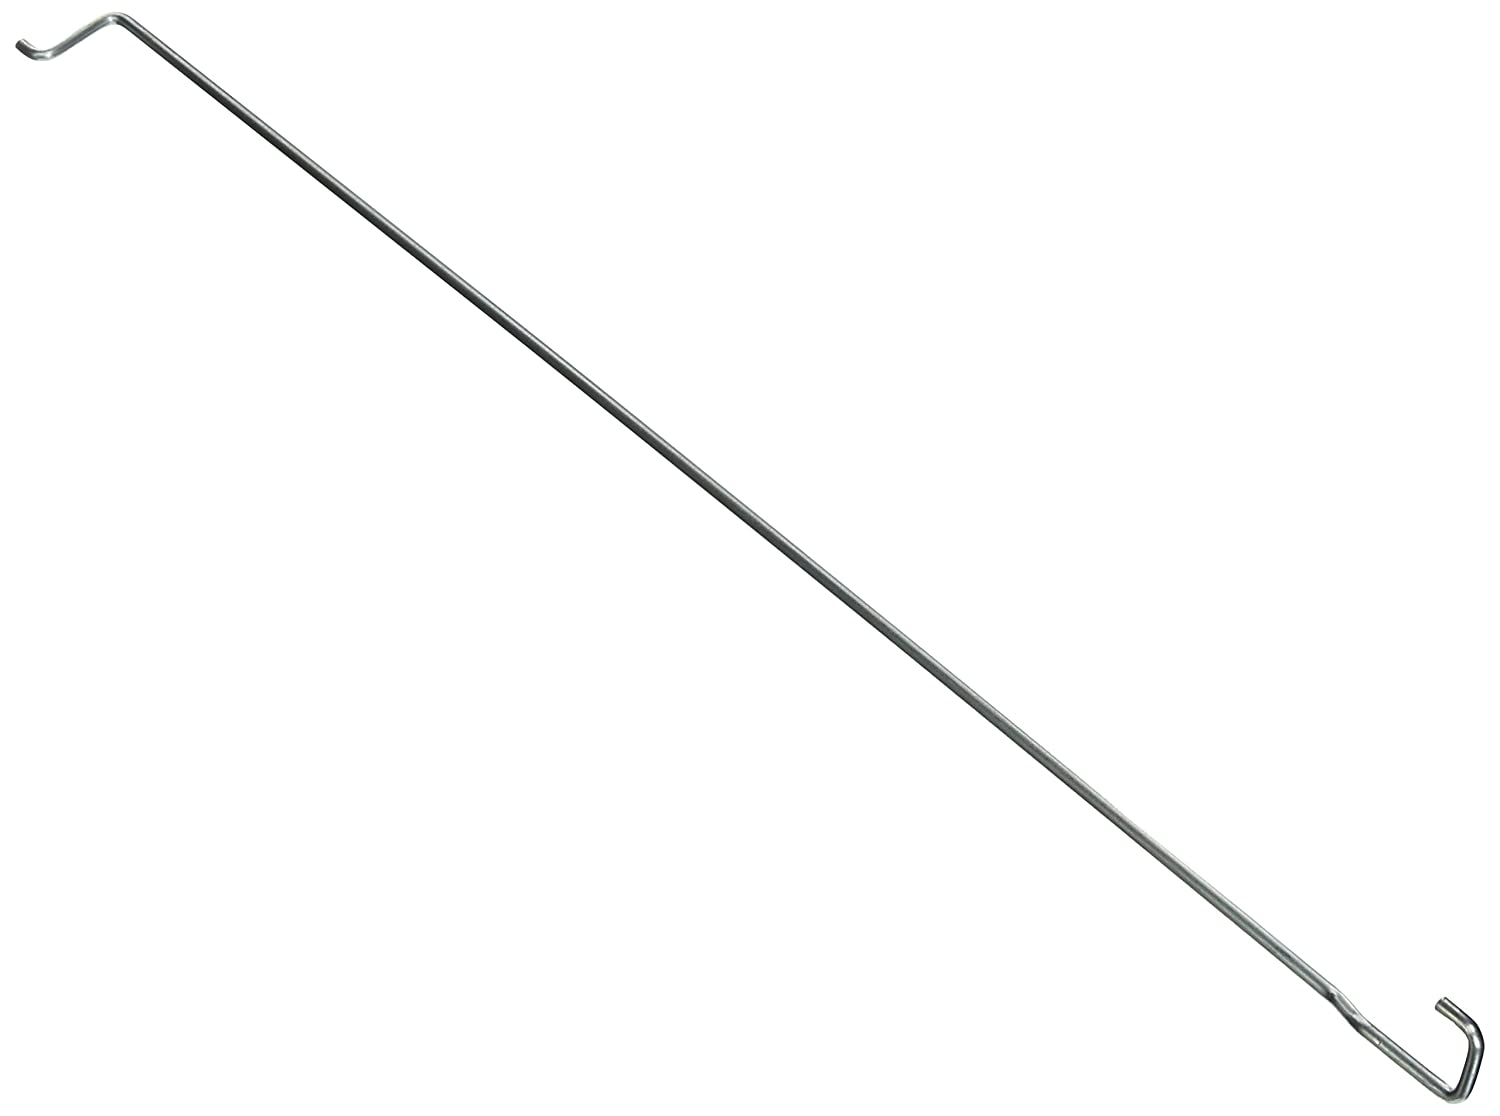 4452395 Whirlpool Wall Oven Door Tension Spring (Left Hand)